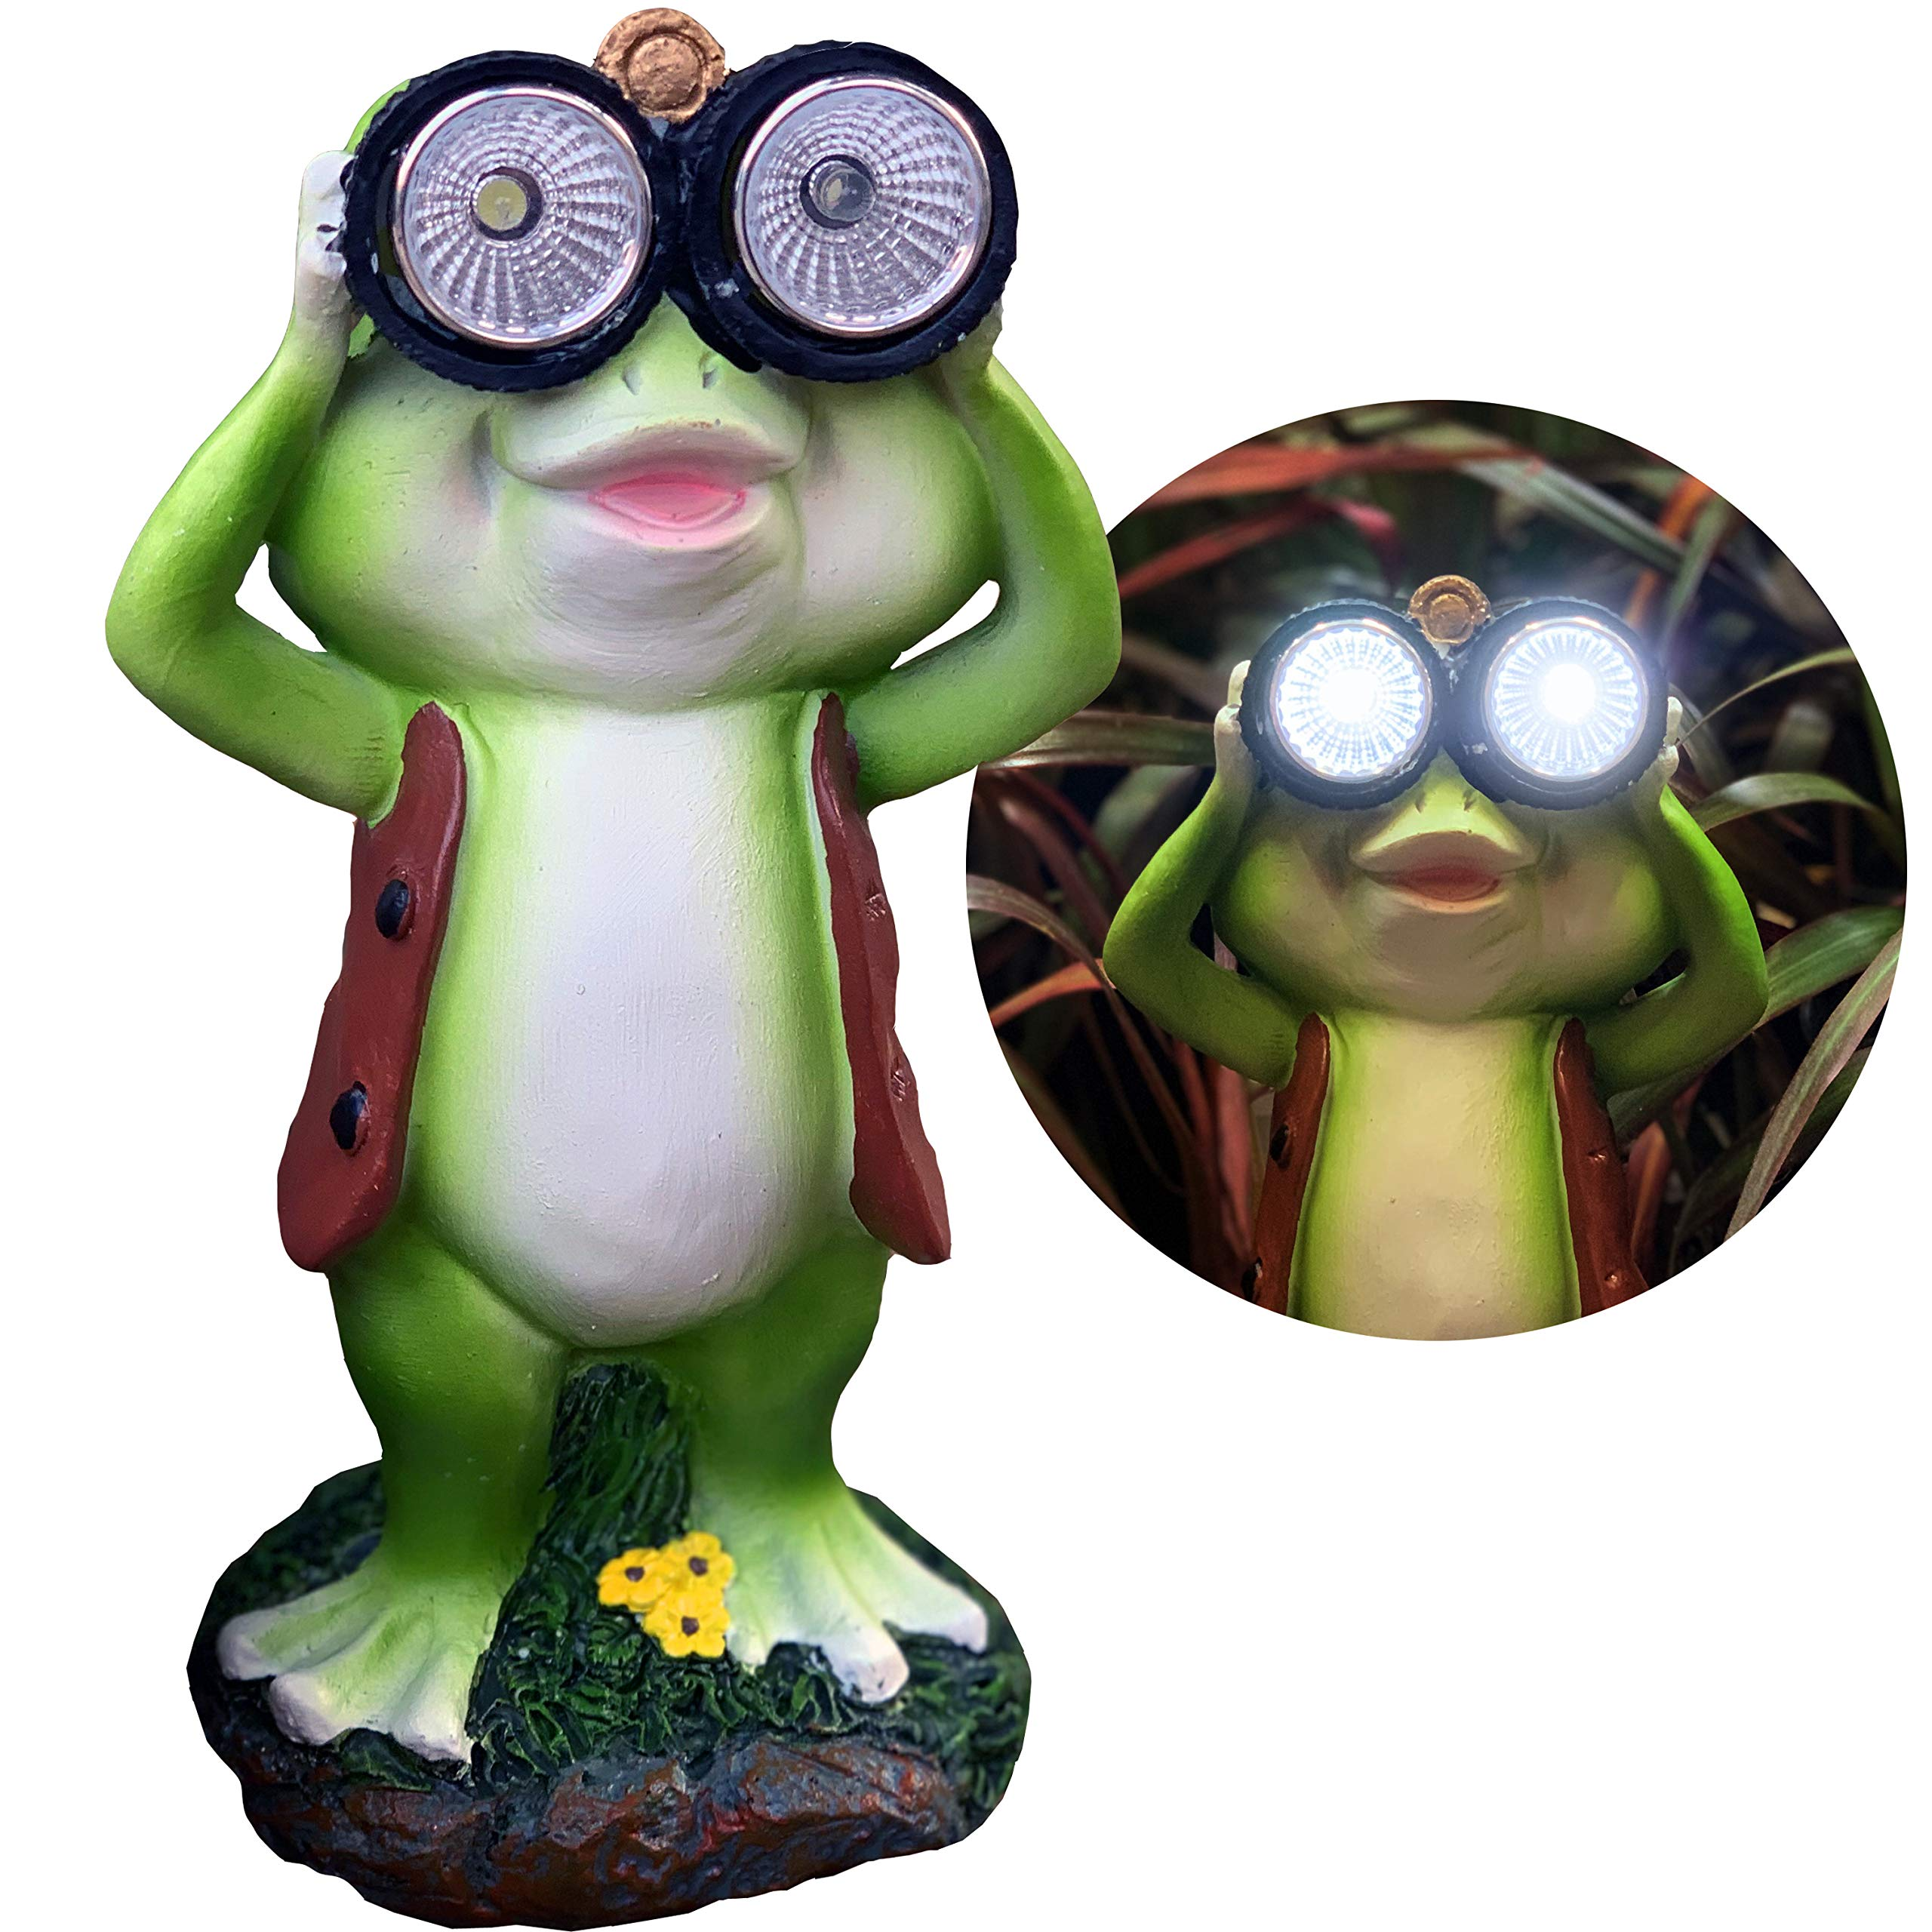 New Solar Frog Lawn Ornament - Limited Edition 'Freddy The Explorer'